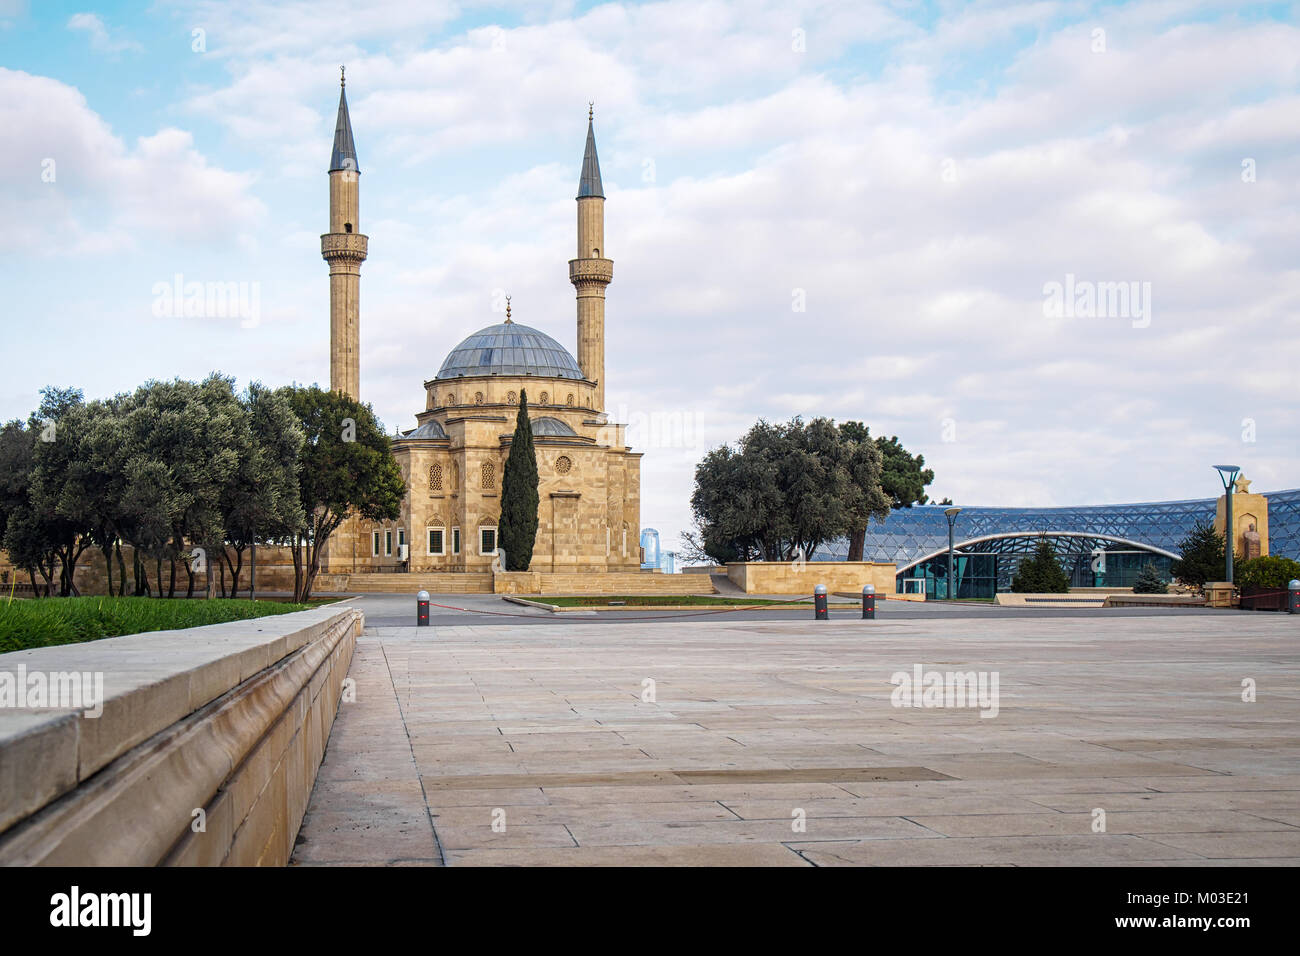 The Mosque of the Martyrs or Turkish Mosque in Baku, Azerbaijan Stock Photo